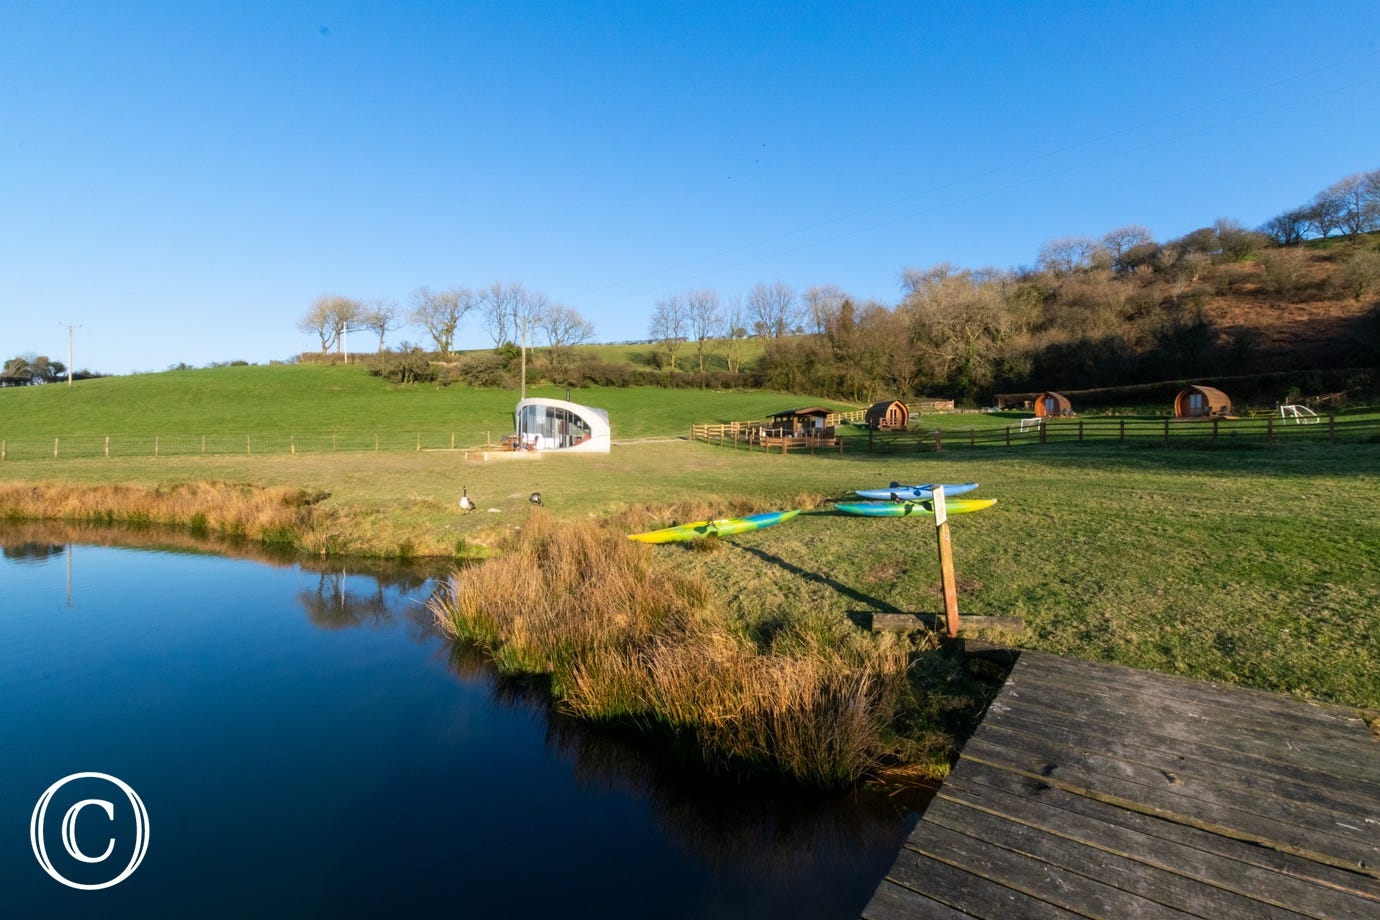 Sky Hut is located on a family run glamping site in beautiful West Wales countryside